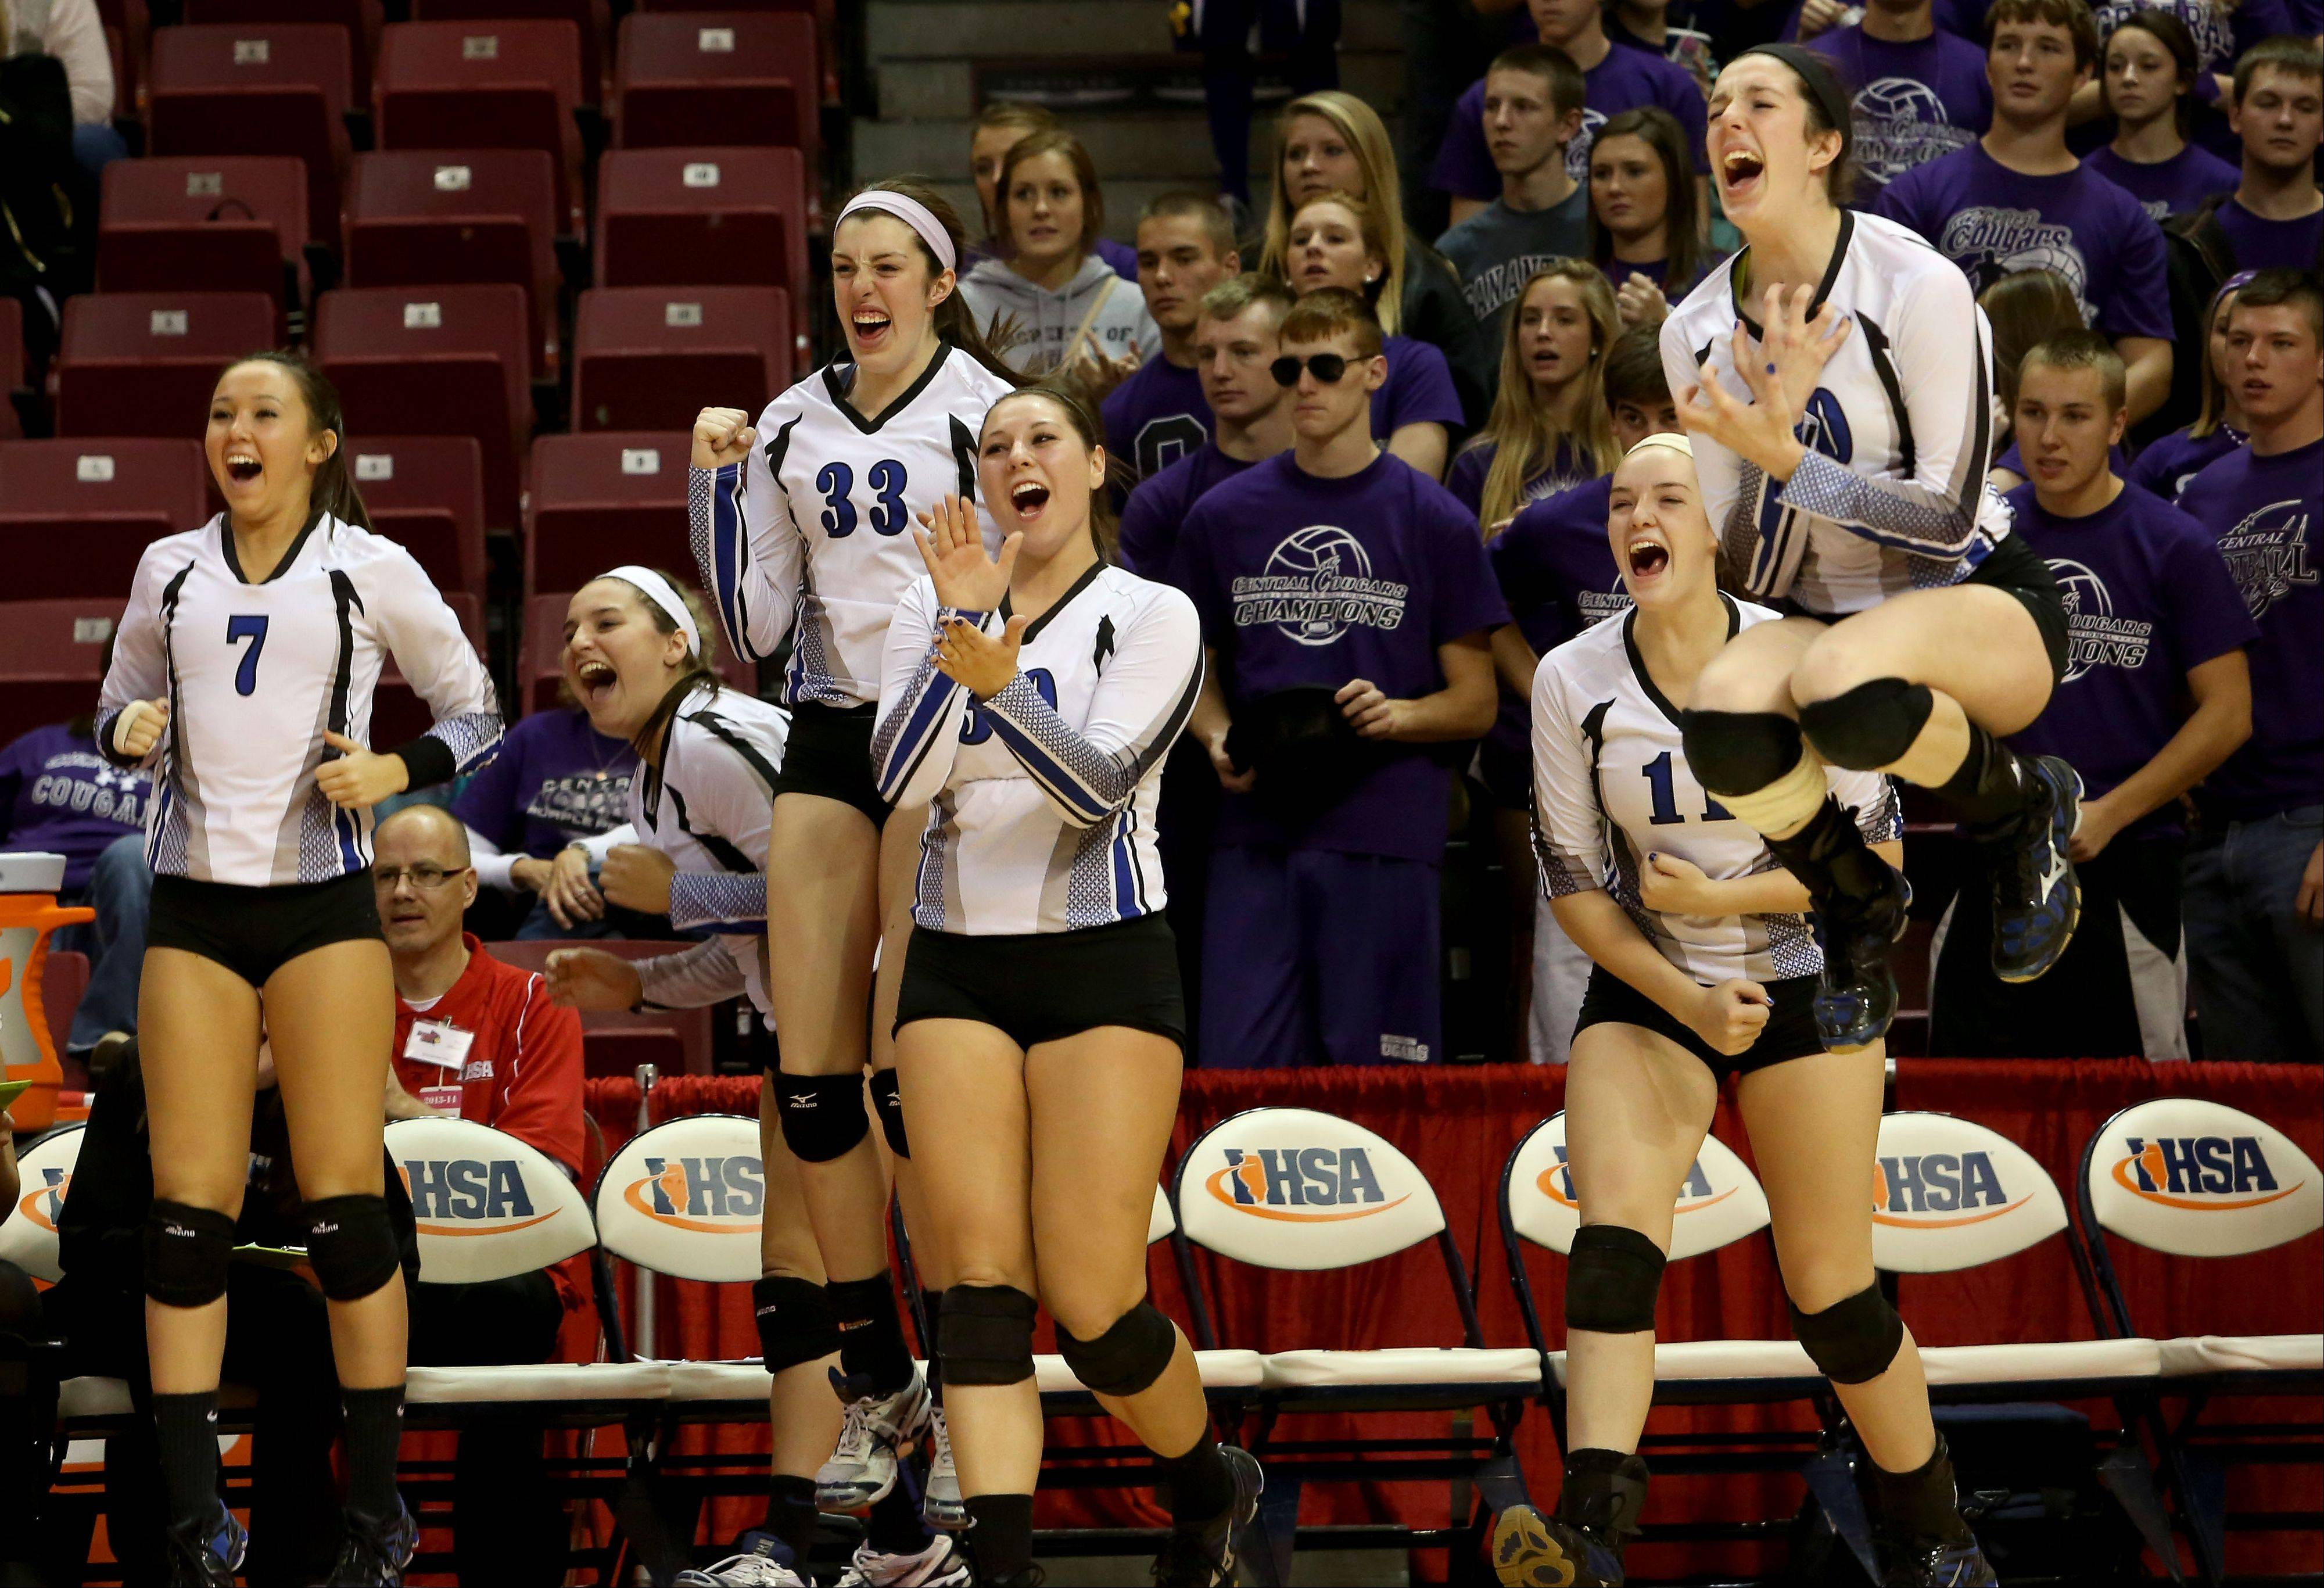 St. Francis reacts to its win over Breese Central in Class 3A state girls volleyball semifinals on Friday in Normal.